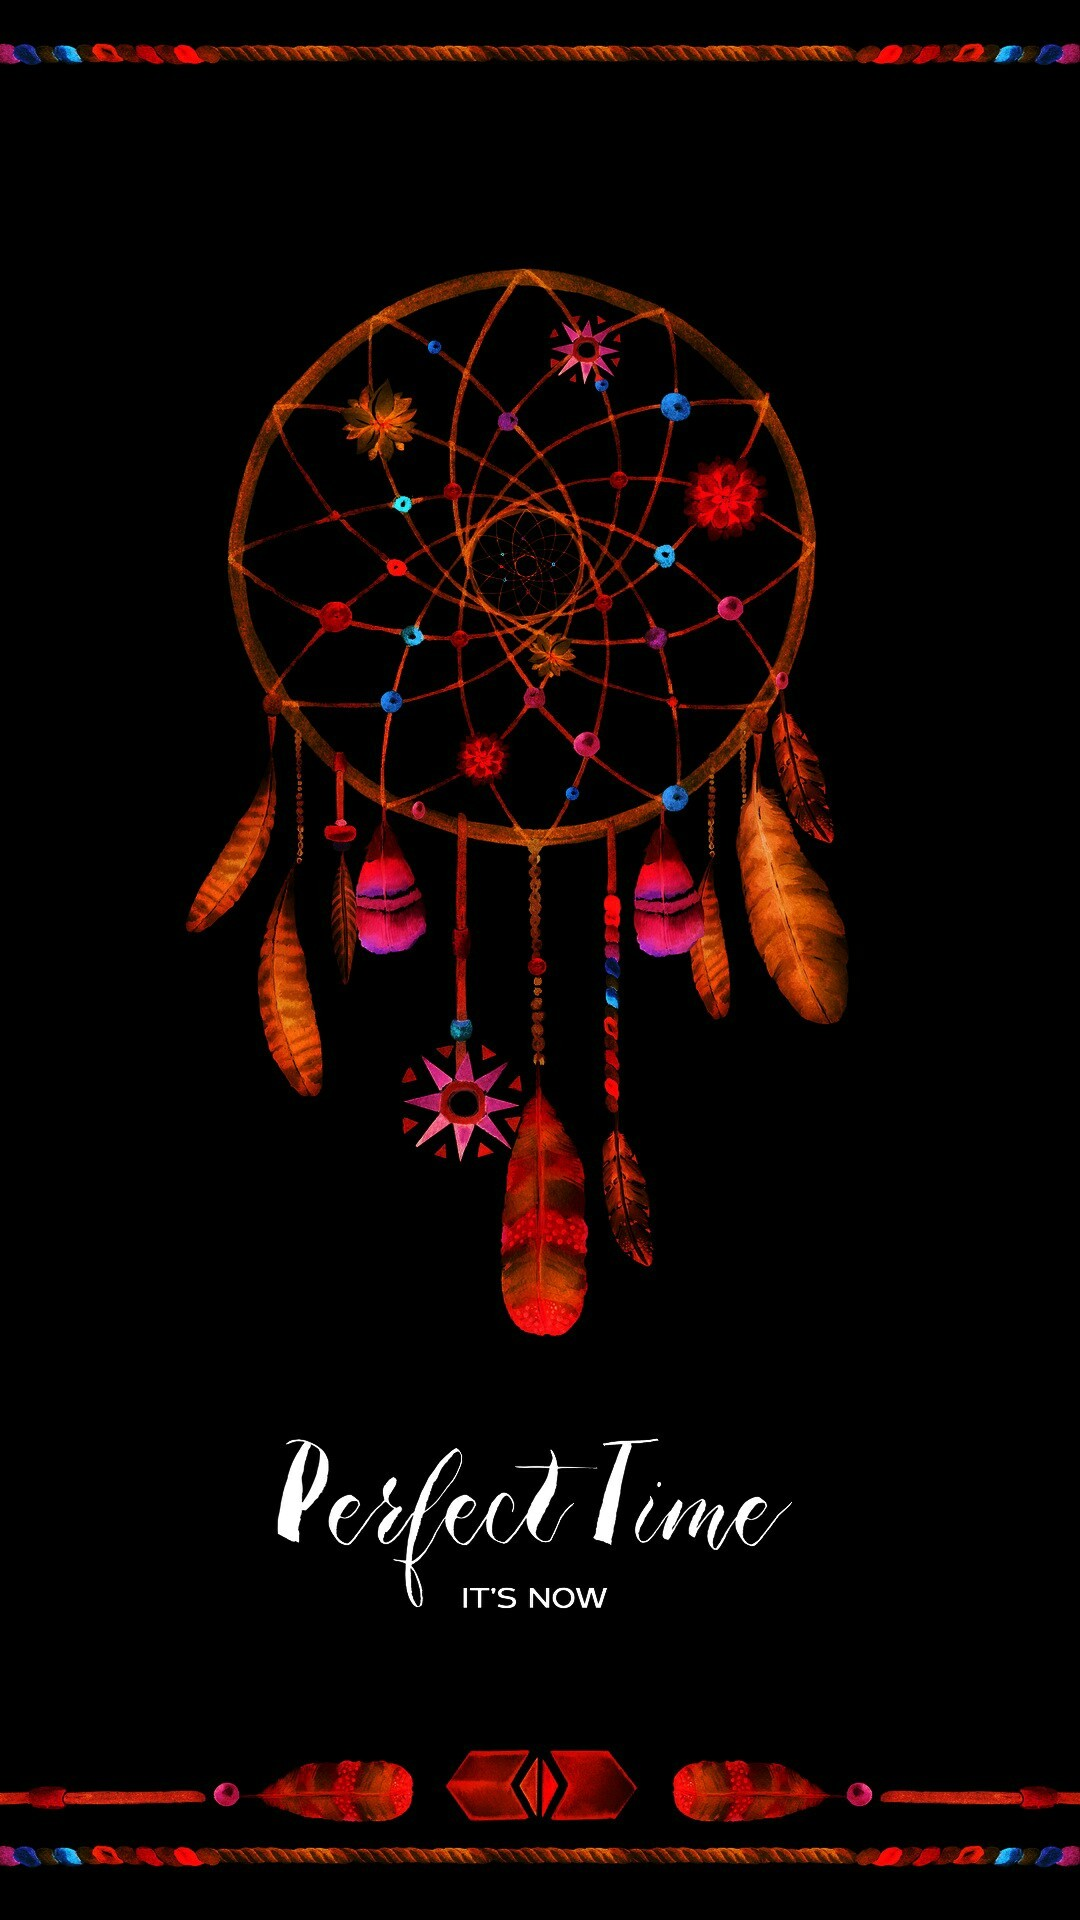 Dreamcatcher Wallpaper, Cute Wallpapers, Phone Wallpapers, Dreamcatchers,  Arrows, Infinity, Girly, Background, Paper